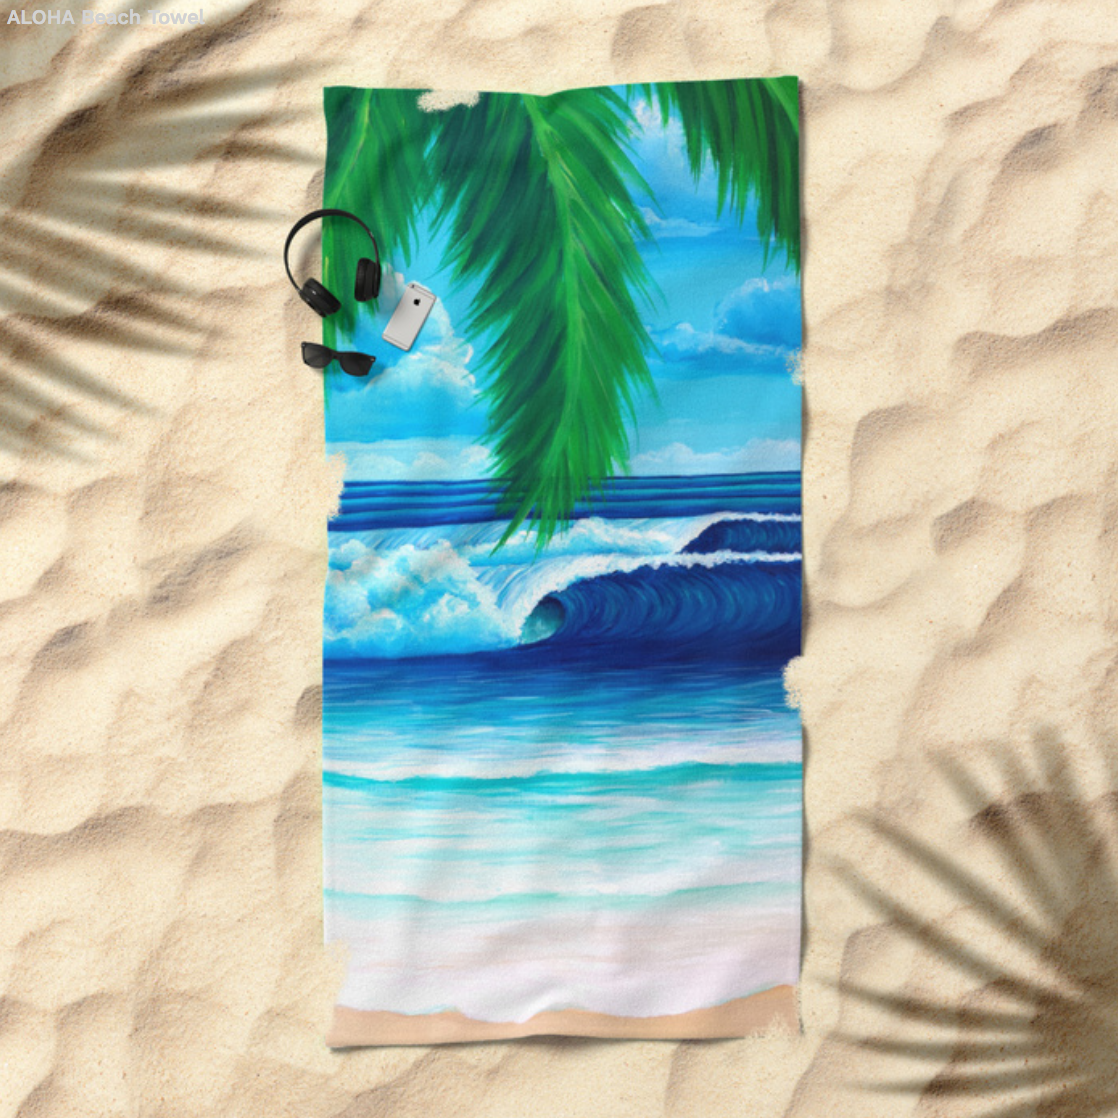 Aloha Beach Towel Stephanie Boinay Art